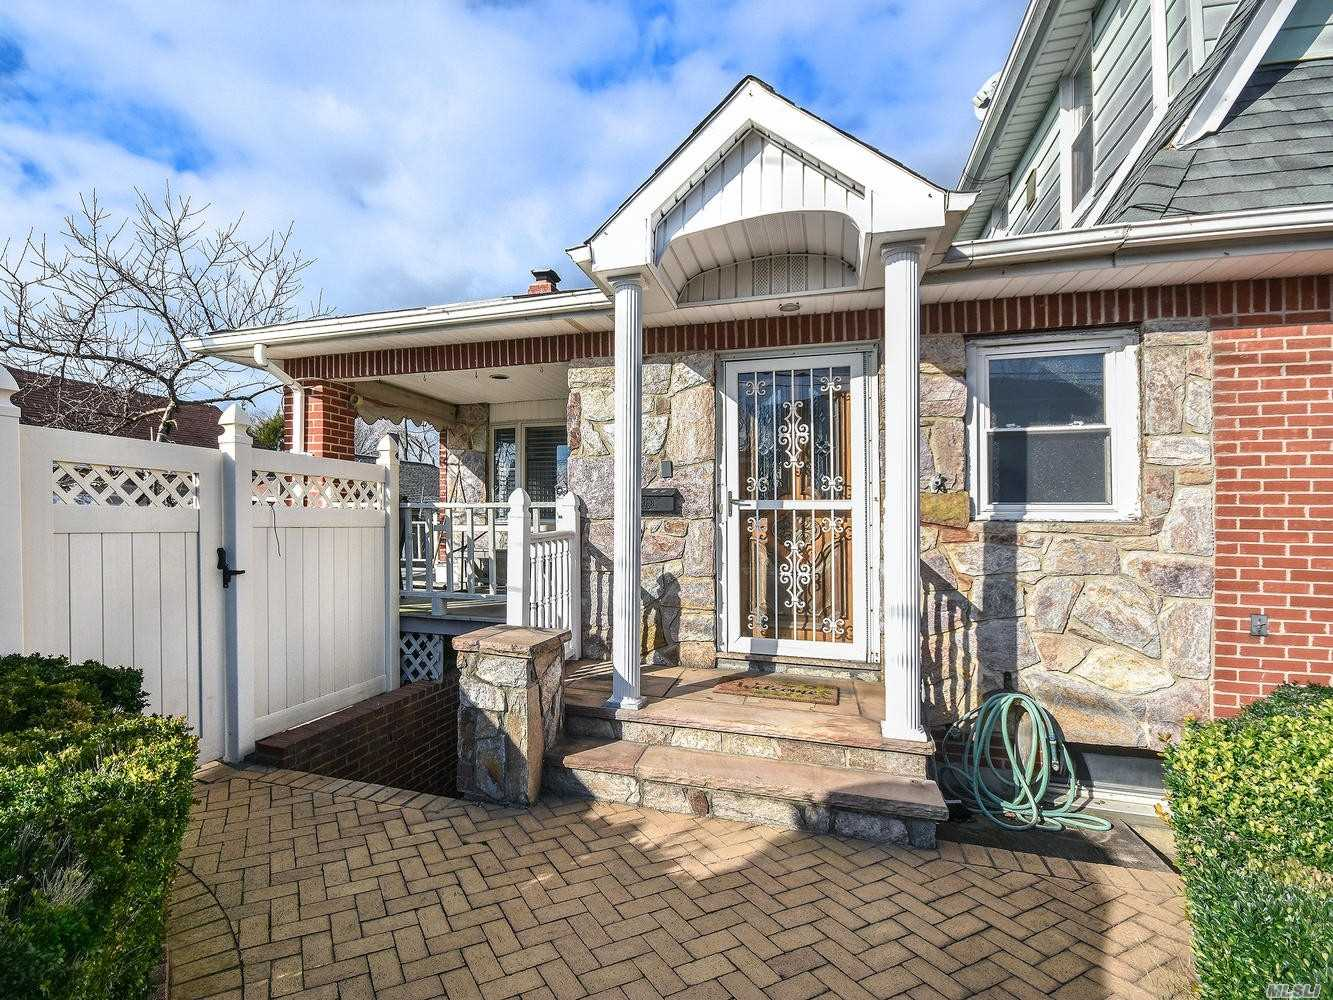 Meticulously Kept First Story Apartment Features Separate Entrance Into Bright And Spacious Living Room With Hardwood Floors And Sliders To Side Yard. Granite Eat-In Kitchen, Stone Living Room With Wood-Burning Fireplace, Master Suite With Bath, Two Separate Bedrooms And Laundry In Basement.